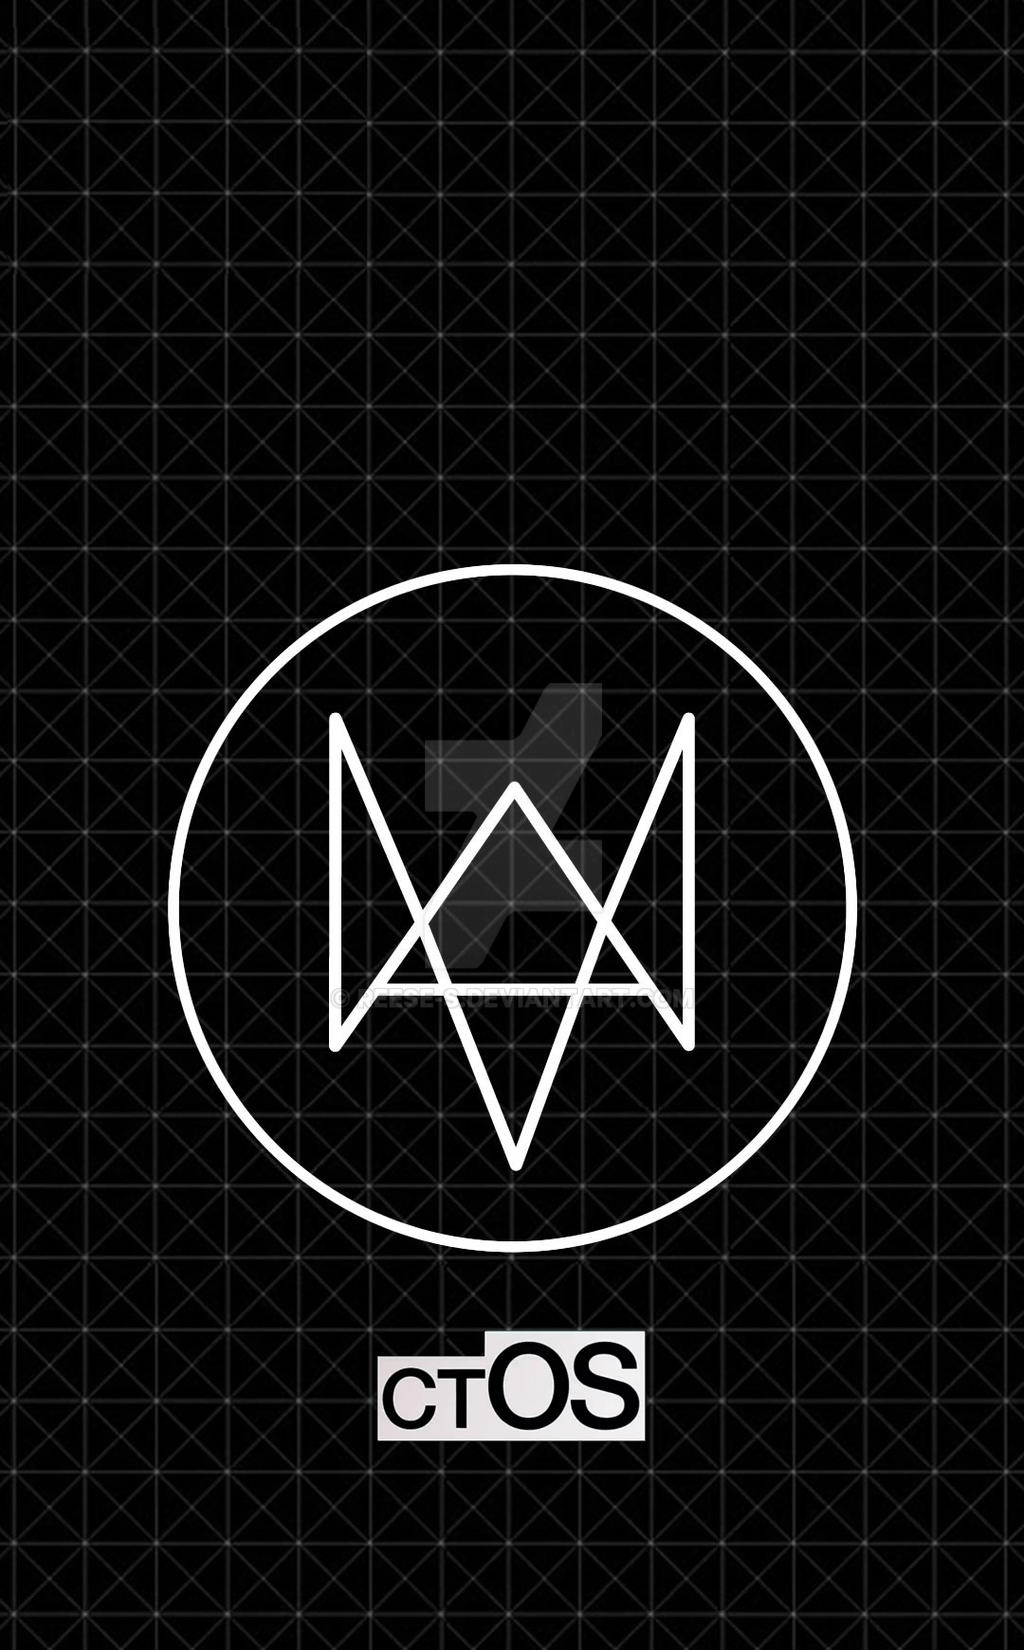 Watch Dogs - ctOS grid iPhone wallpaper by reese-s on ...